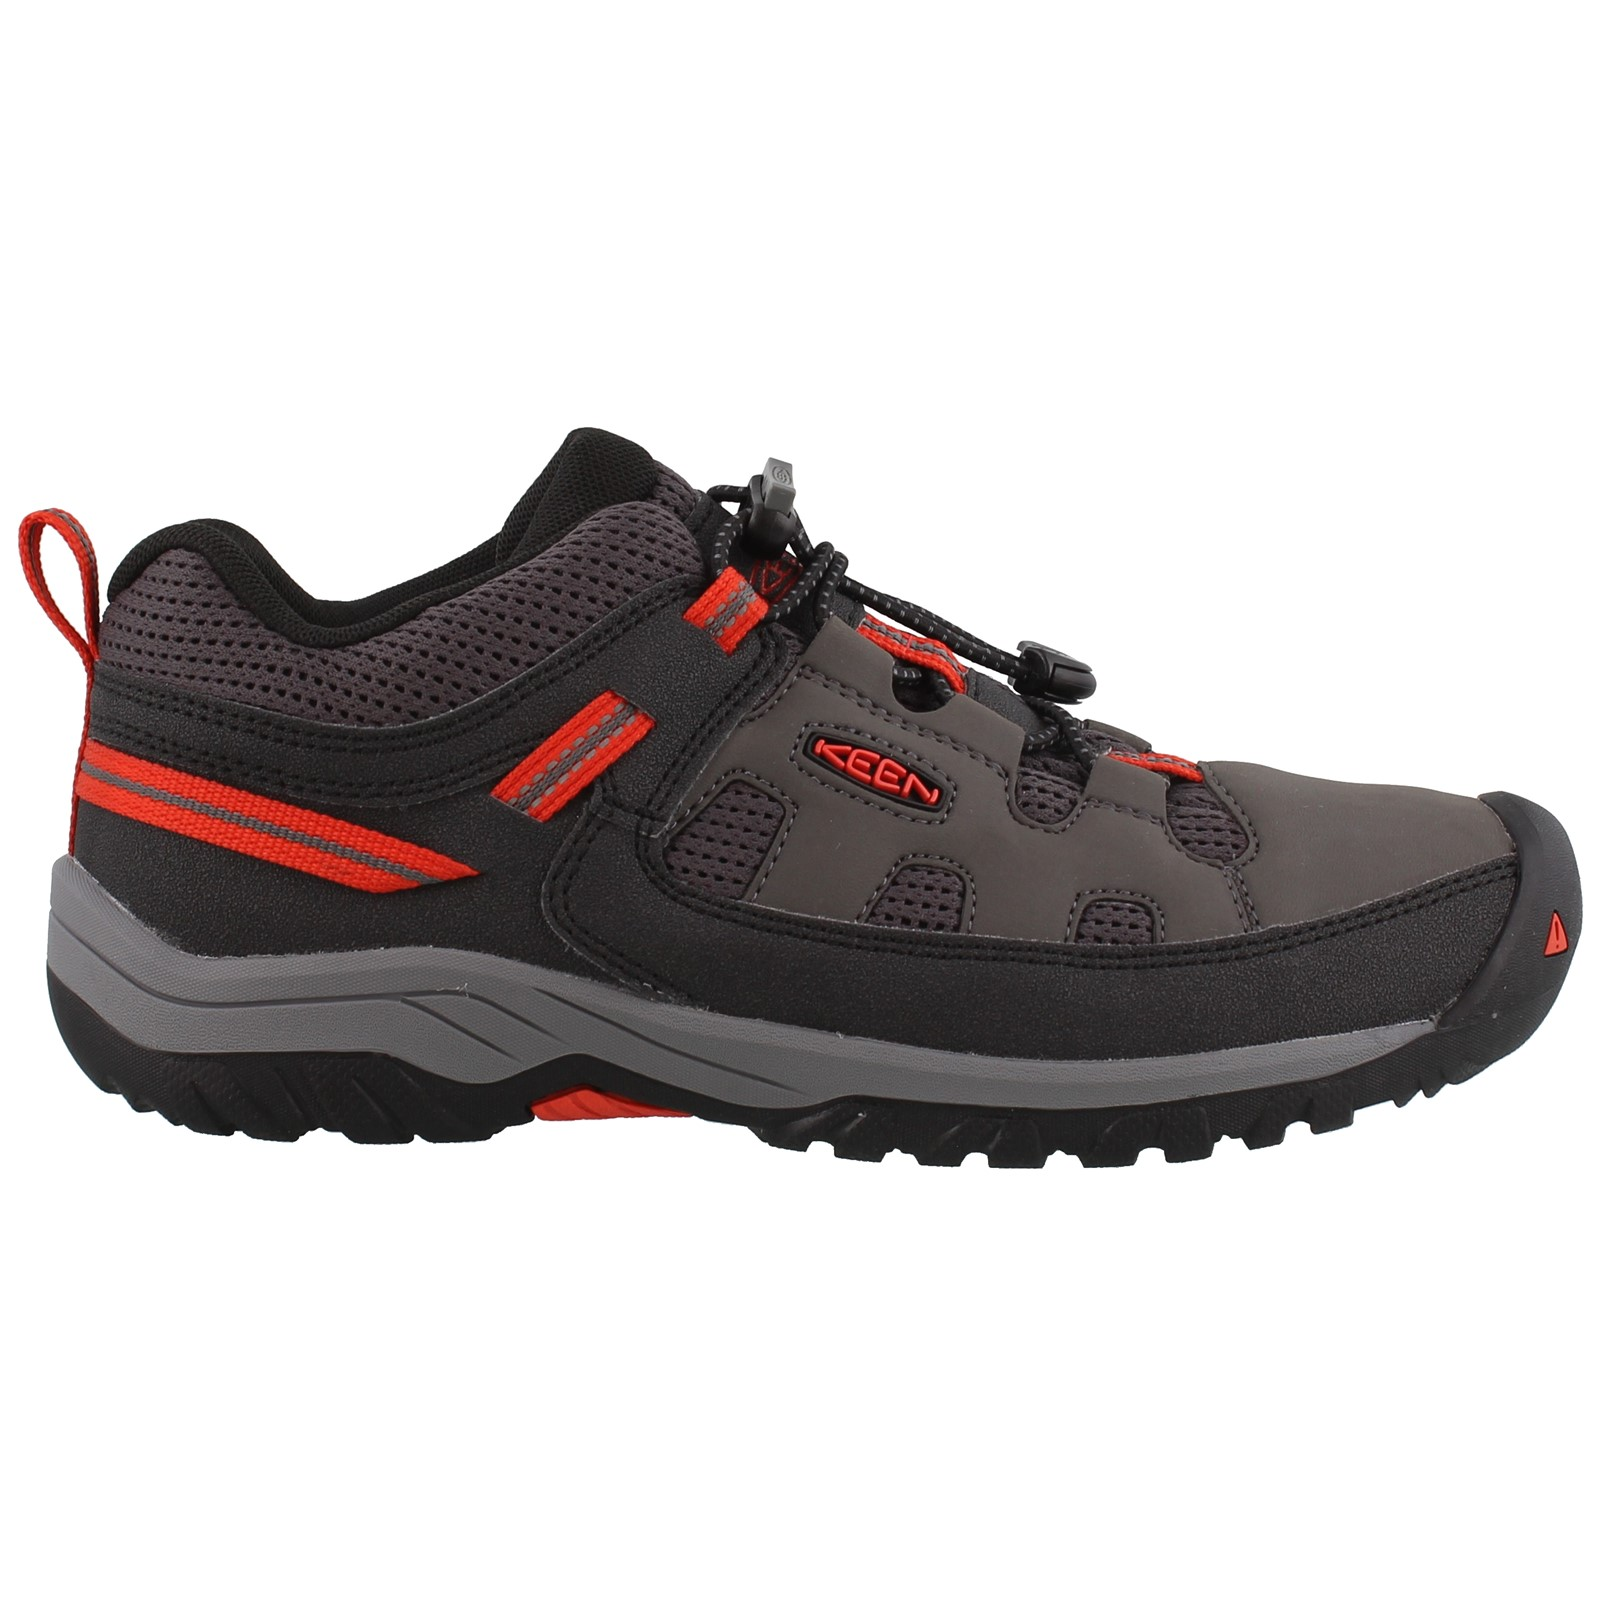 Boy's Keen, Targhee Low Sneaker - Big Kid